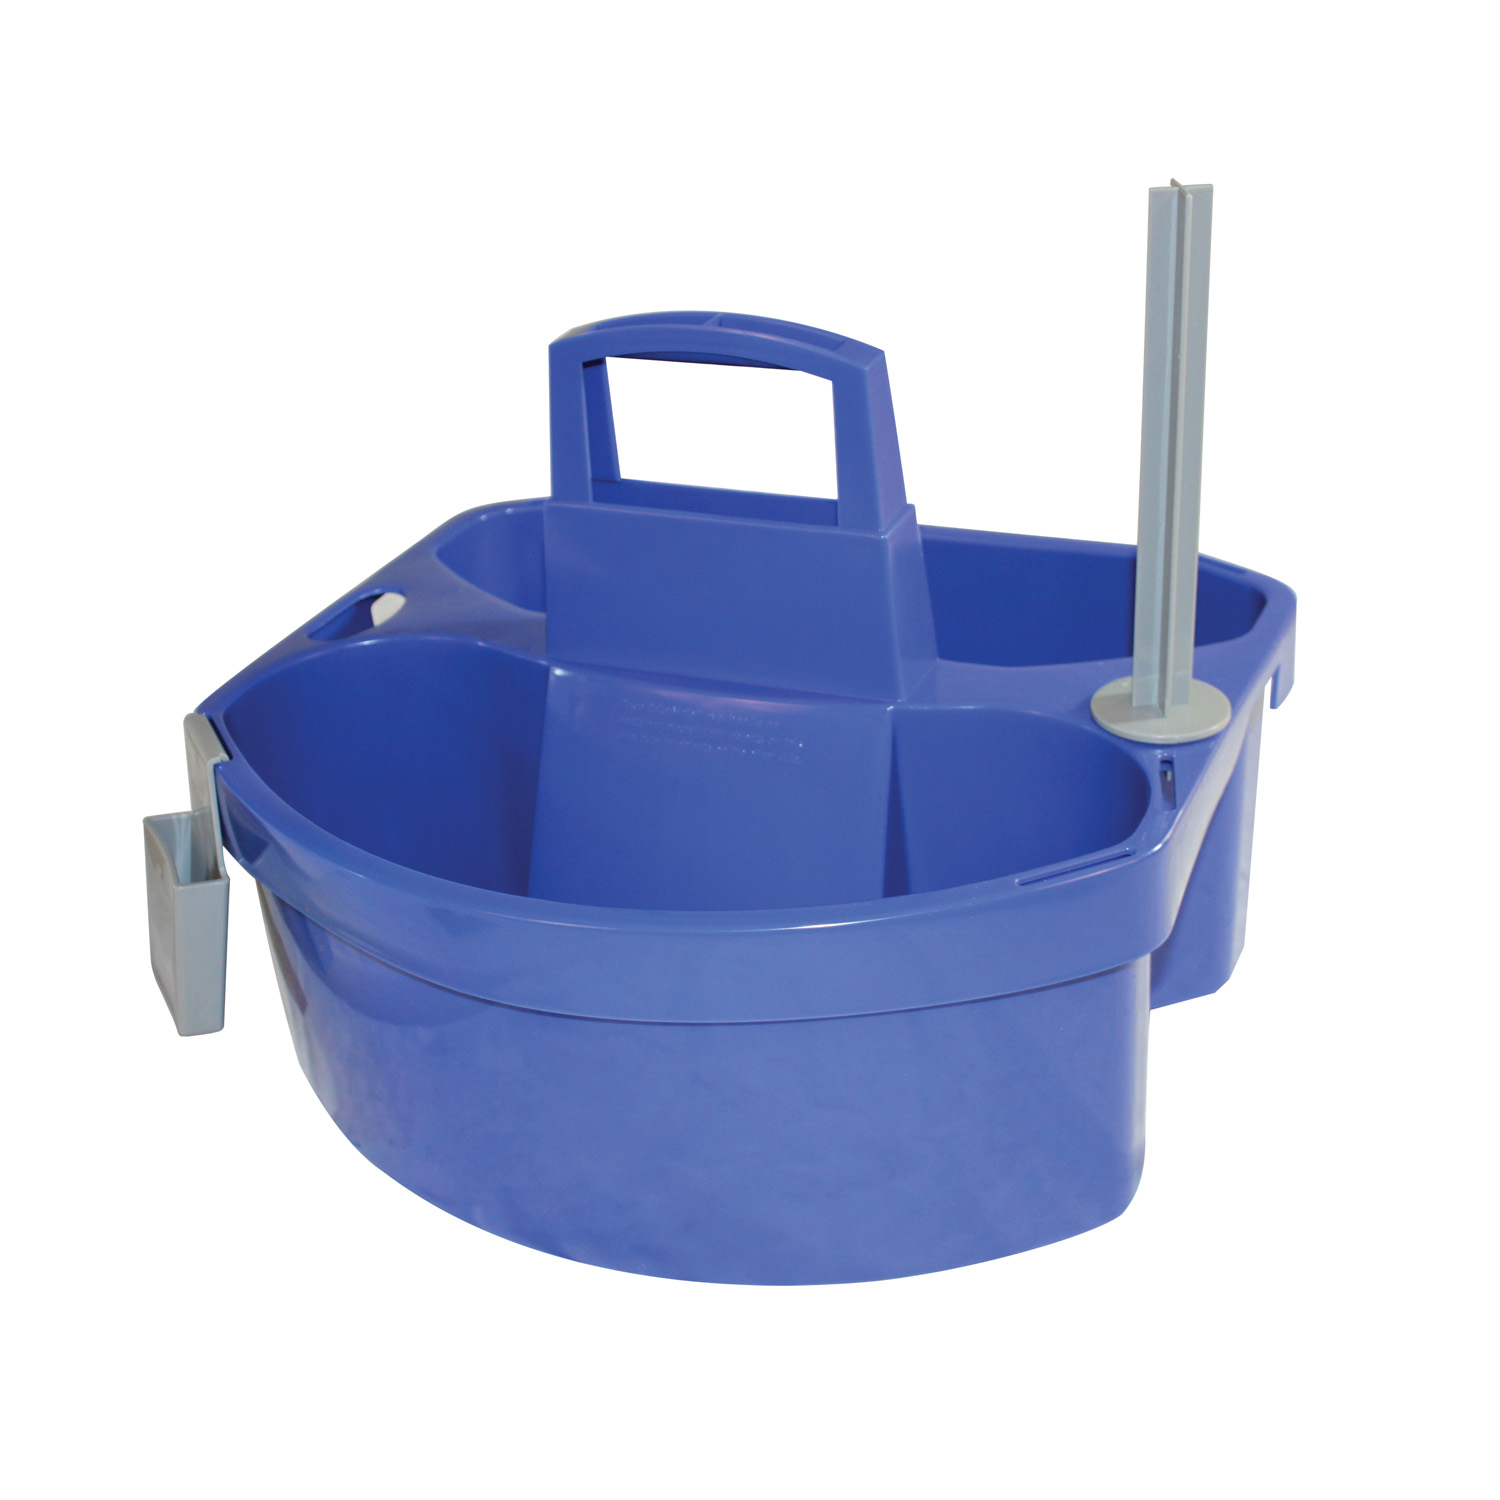 Impact Products 1850 janitor cart, accessories